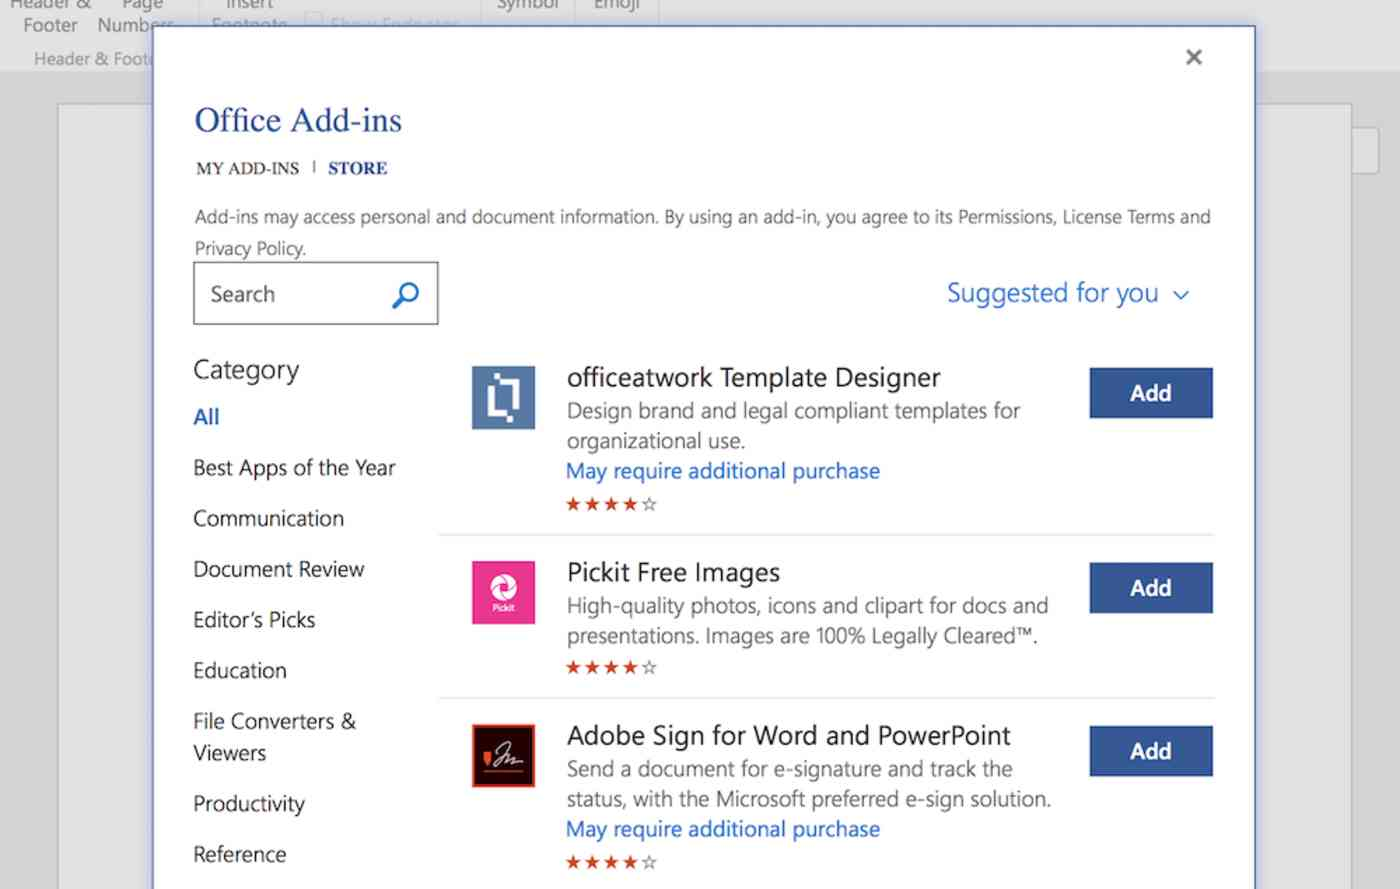 Browse add-ins in Word Online